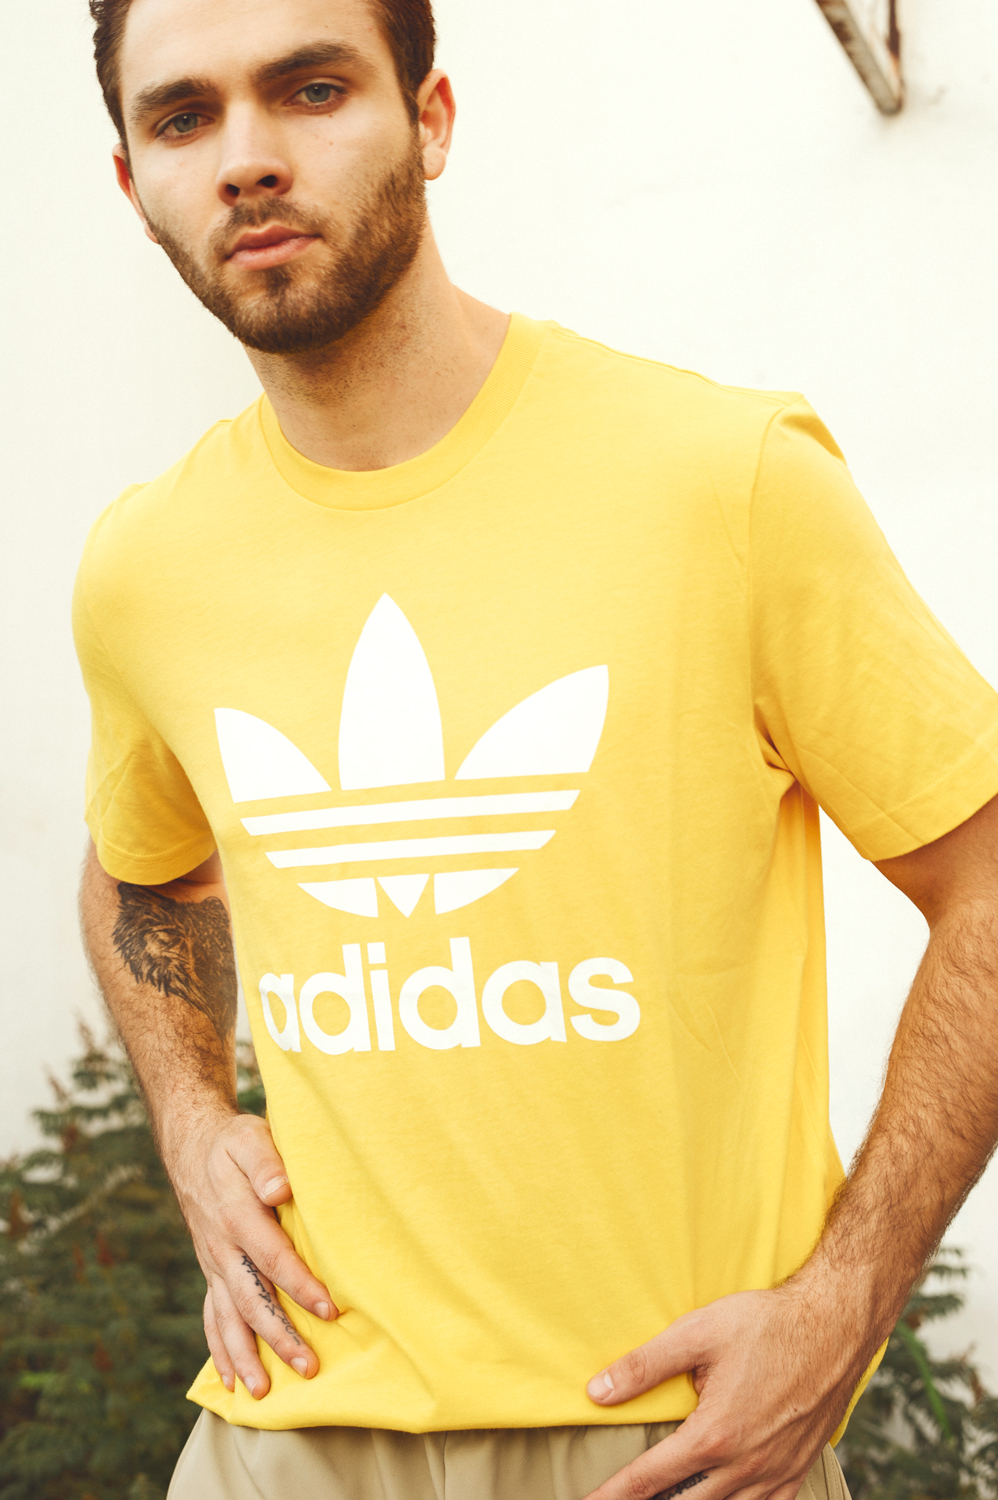 Styling: Liz Gardner for Adidas Originals Photography:  Ashley Camper  Talent:  Tyler from Ignite Models